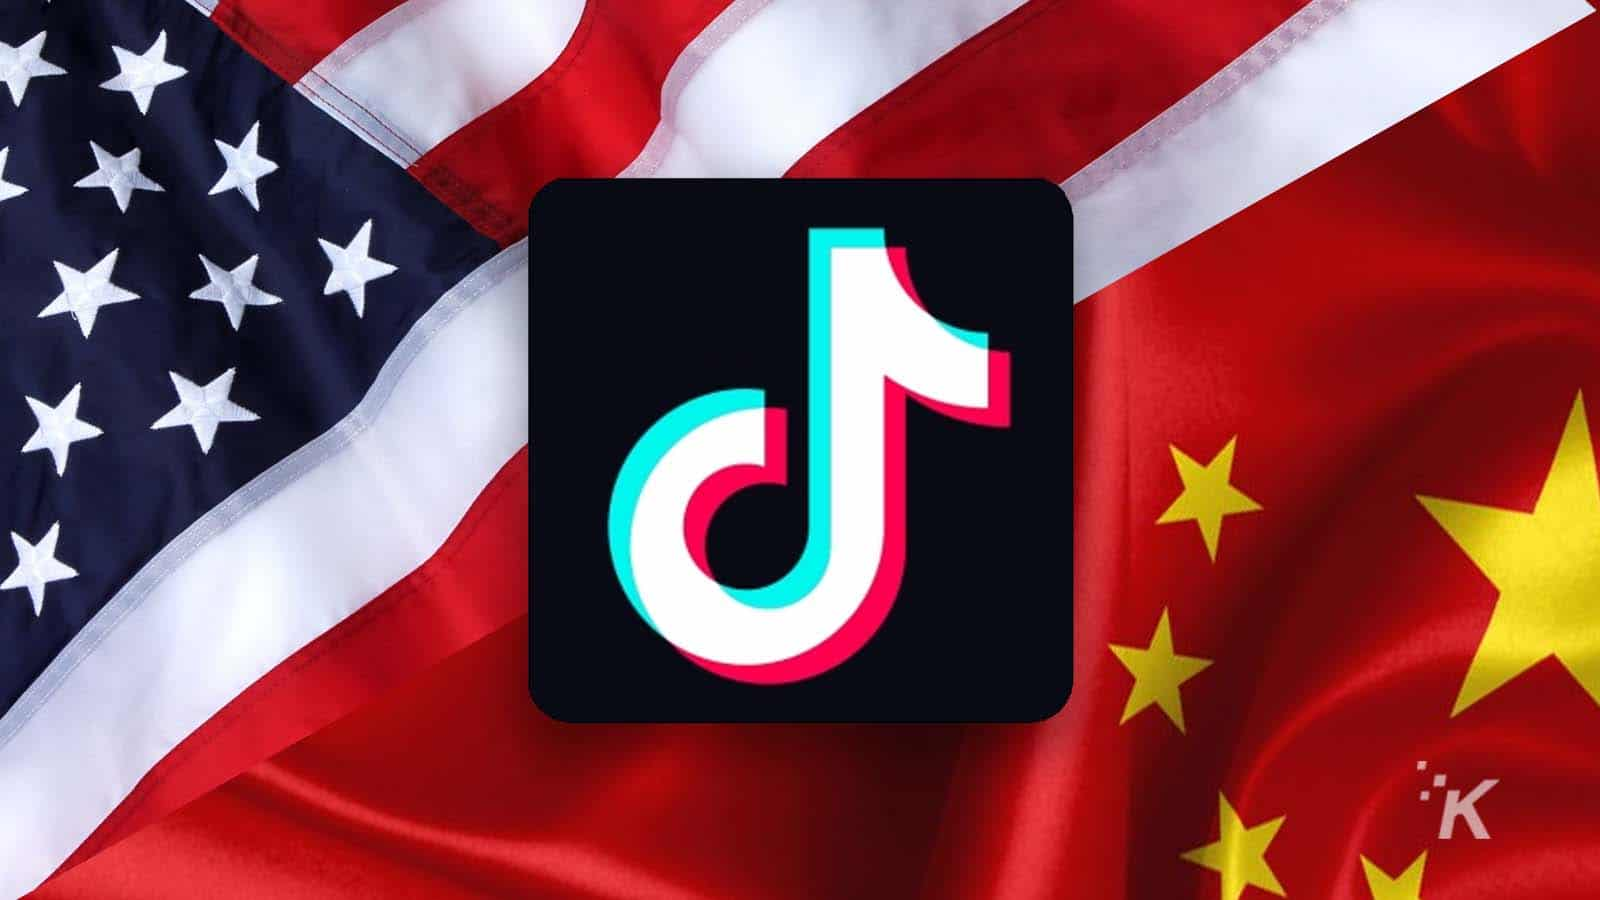 tiktok us flag and chinese flag